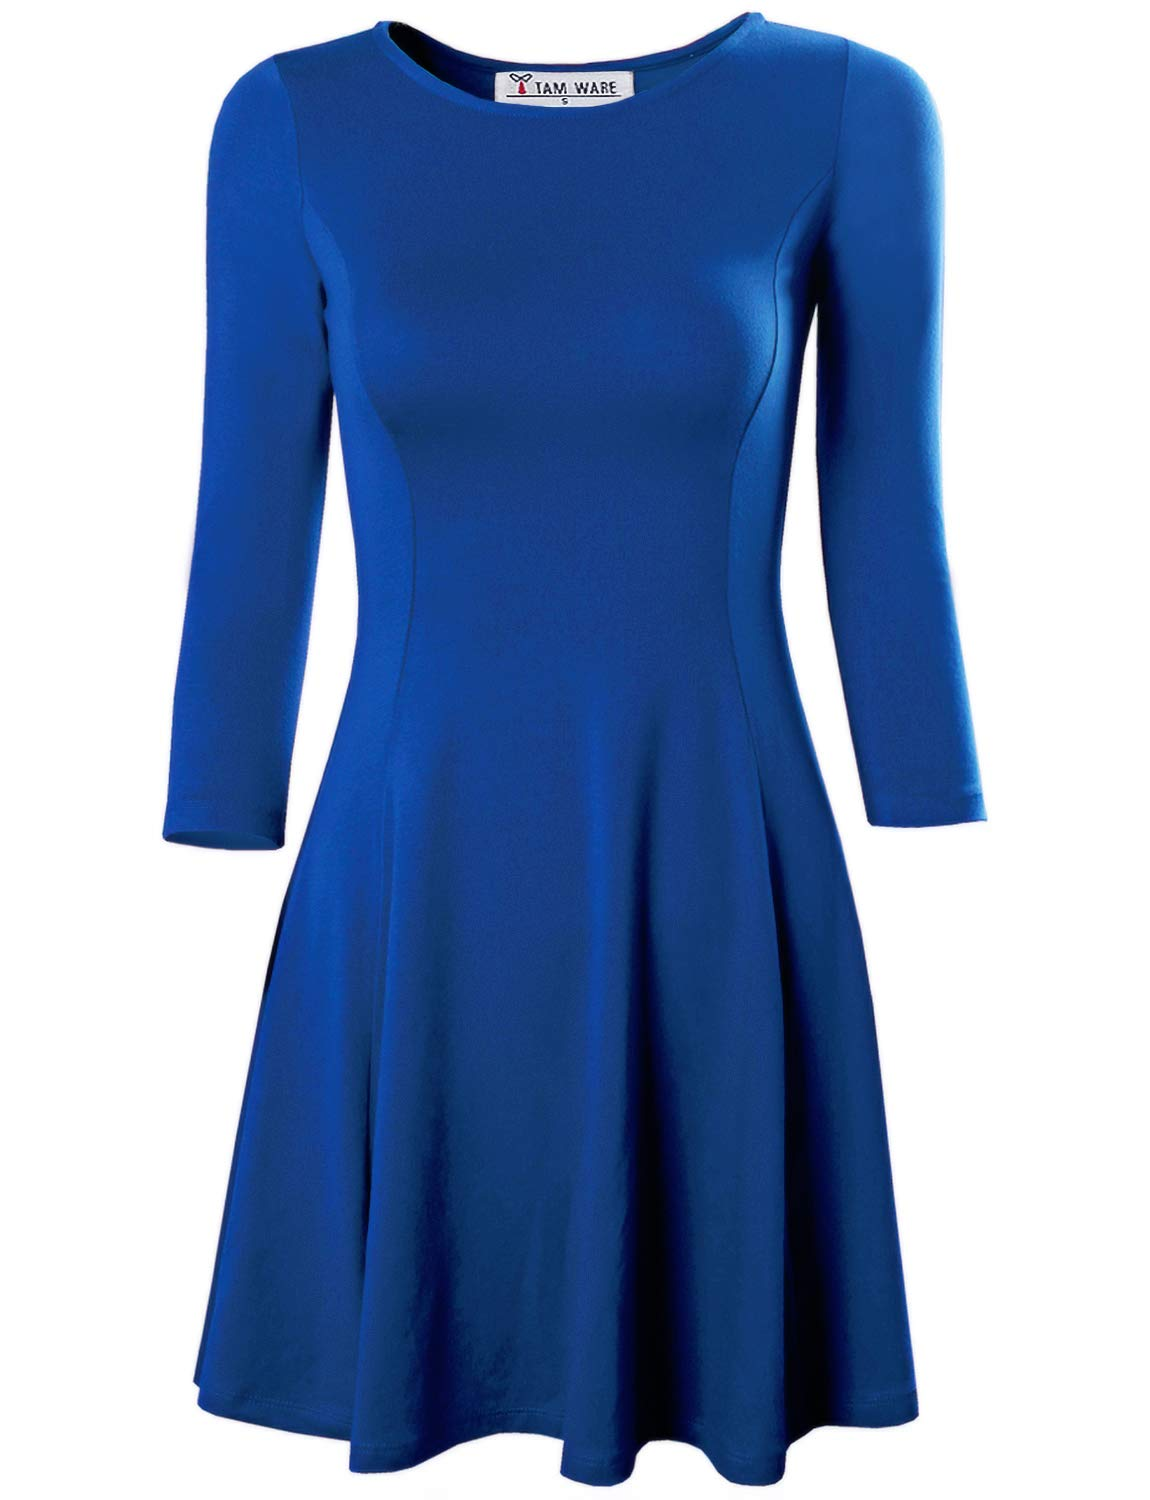 Available at Amazon: TAM WARE Women's Casual Slim Fit and Flare Round Neckline Dress